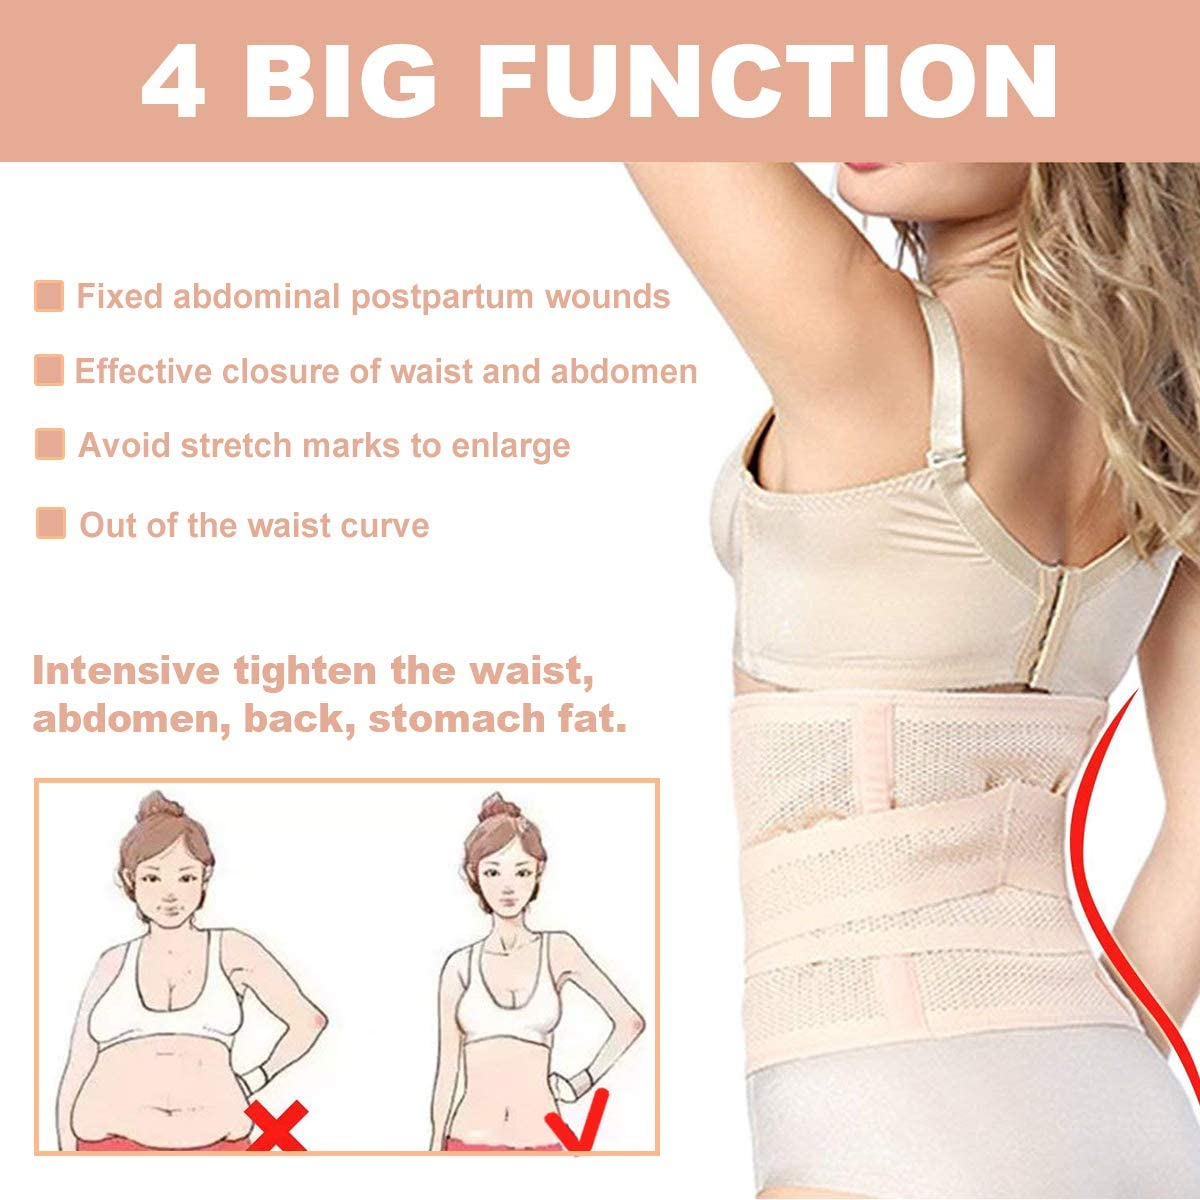 Waist Trainer Belts HIDARLING Postpartum Support Recovery Belly Belt Body Shaper Corset Belt with High Elastic for Women and Maternity Recovering from Birth